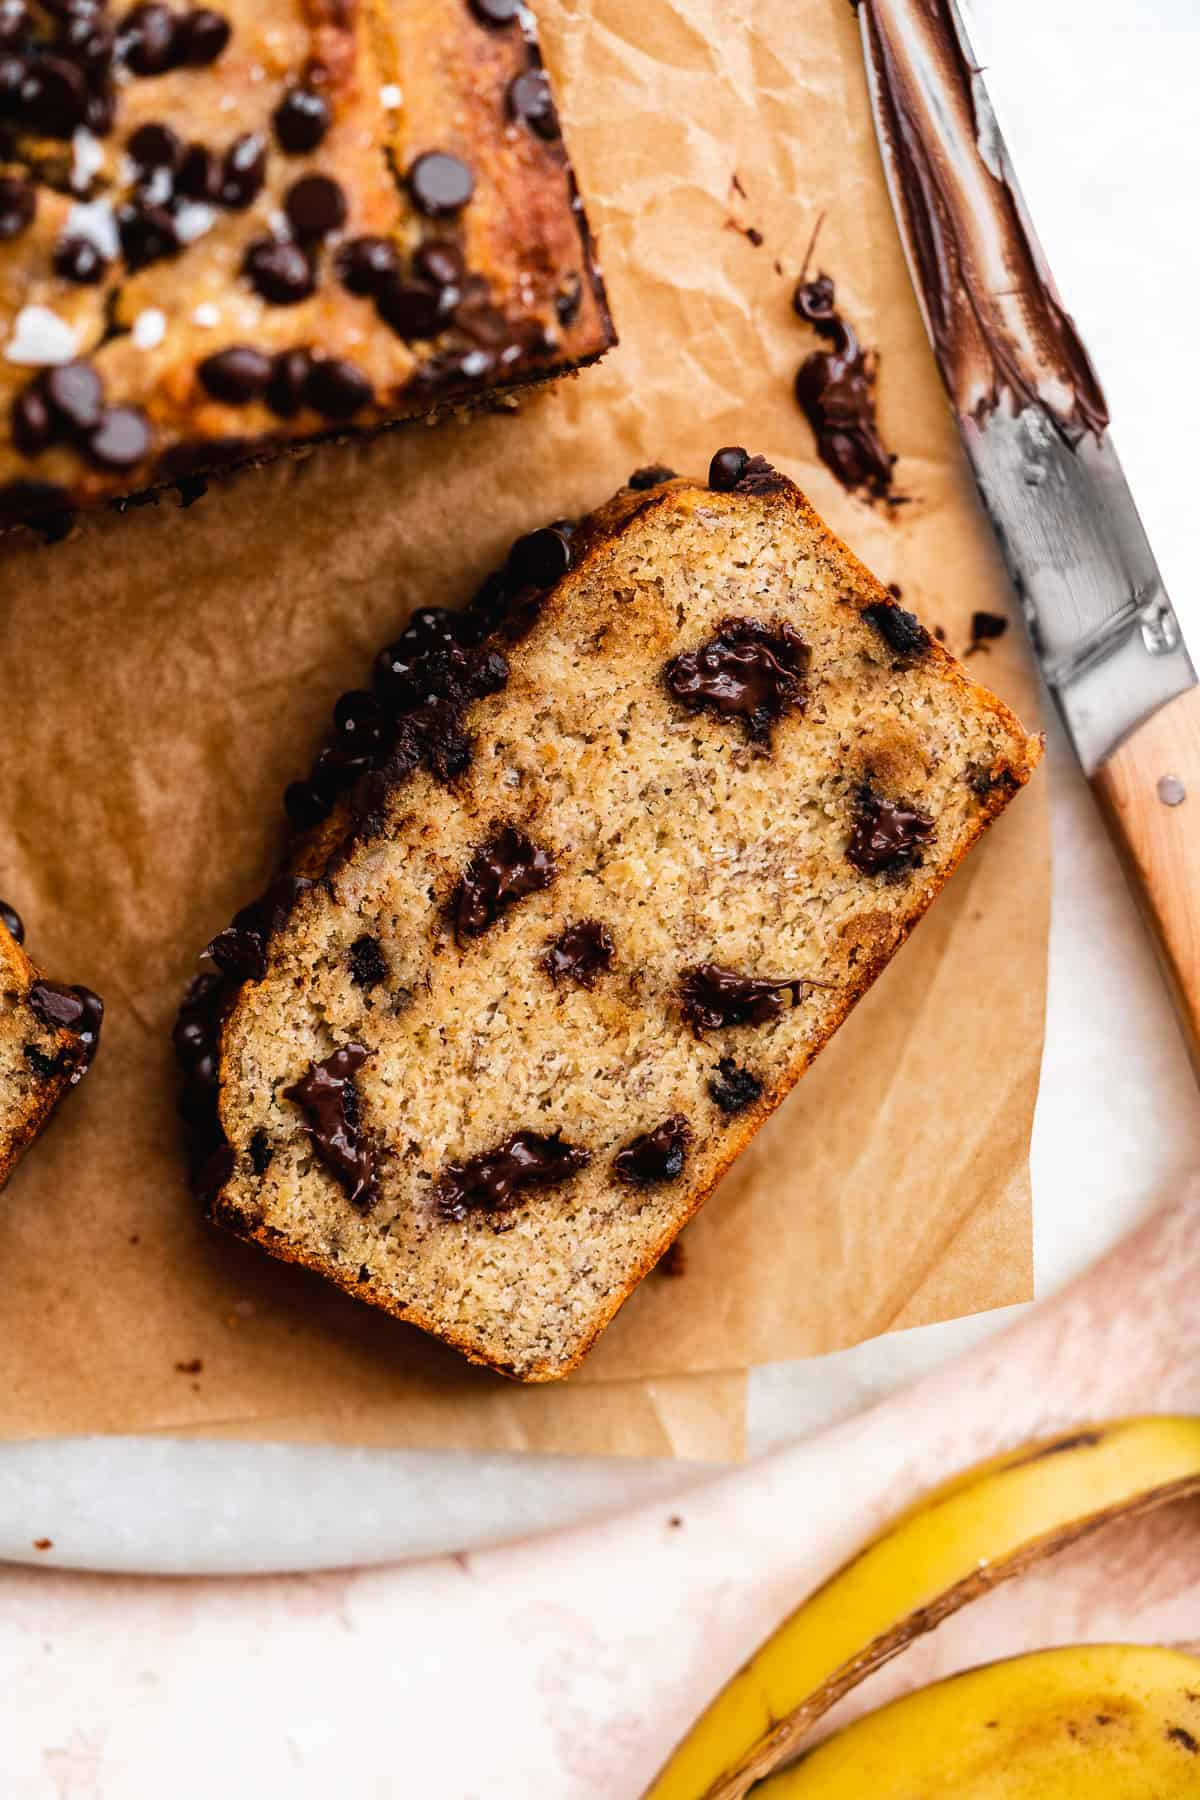 A slice of banana bread with chocolate chips on brown parchment paper with a knife to the side.